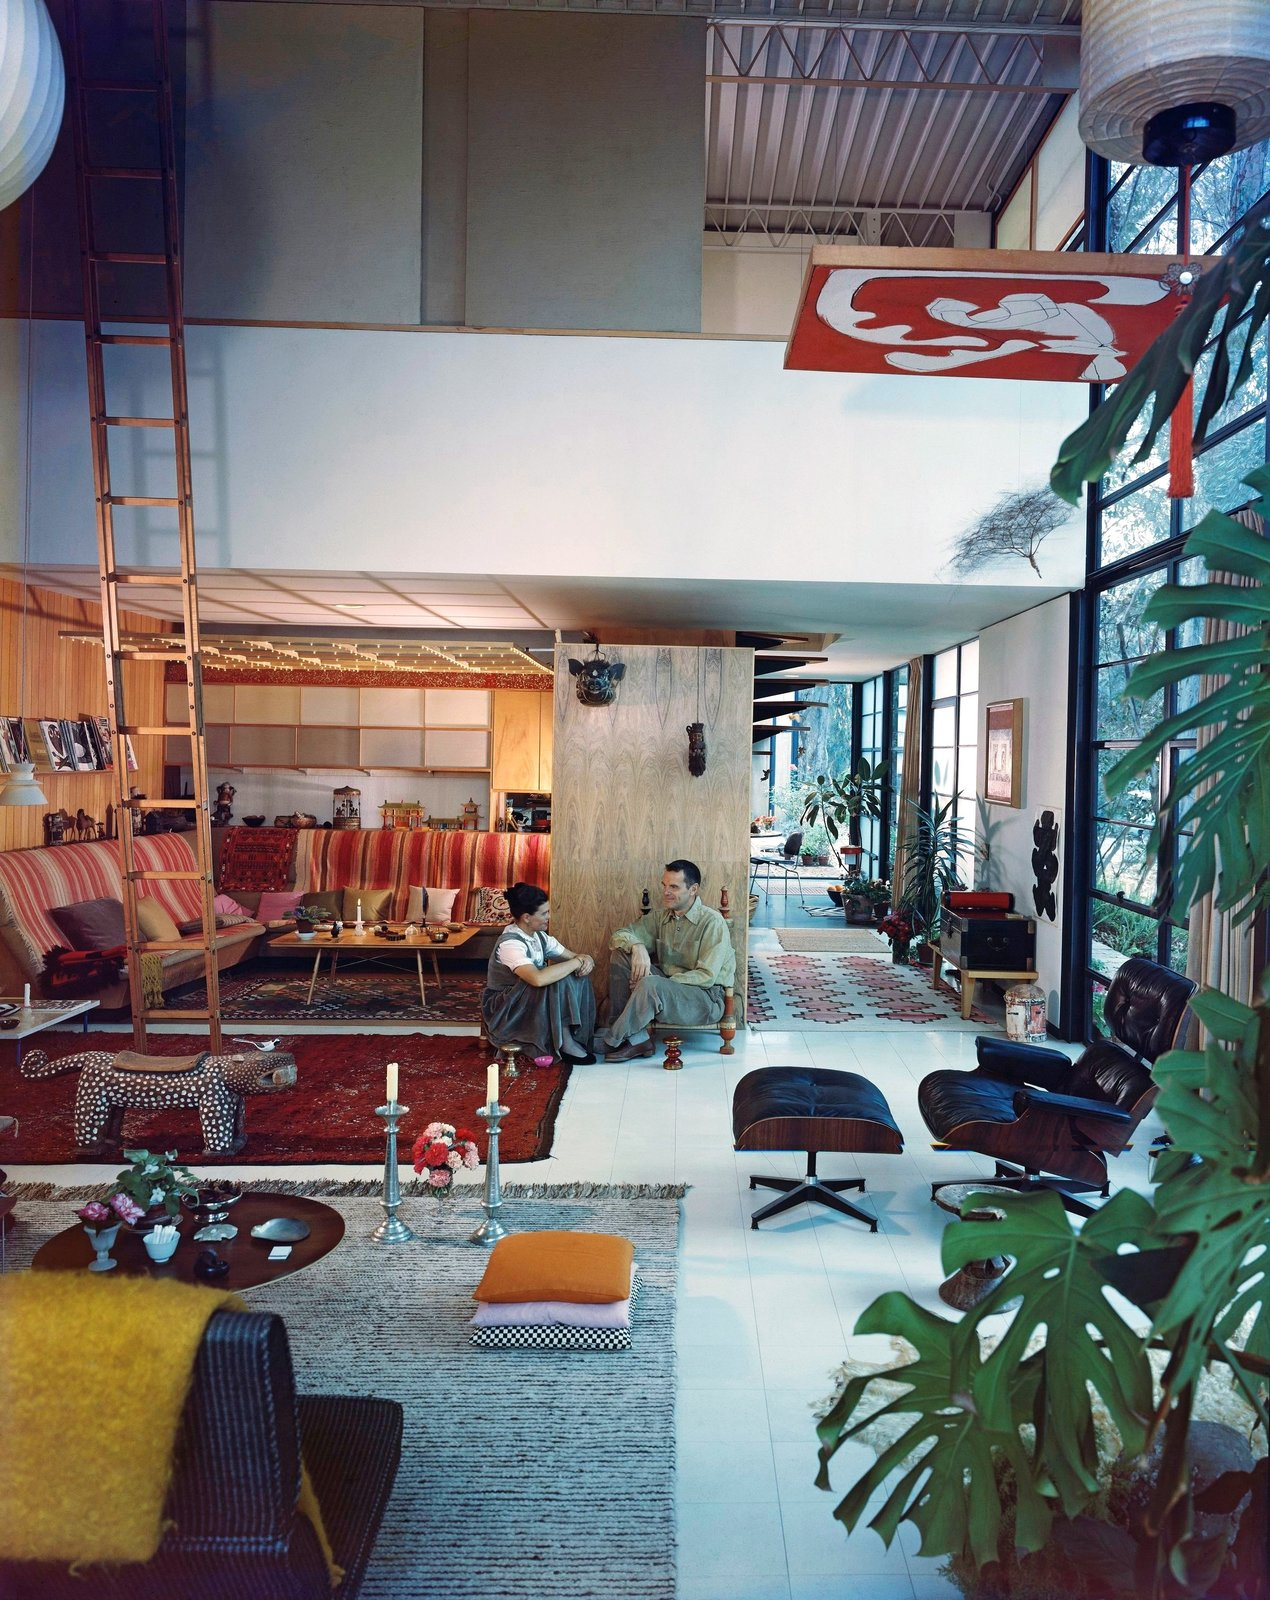 Eames House by Charles and Ray Eames, Pacific Palisades, CA 1949